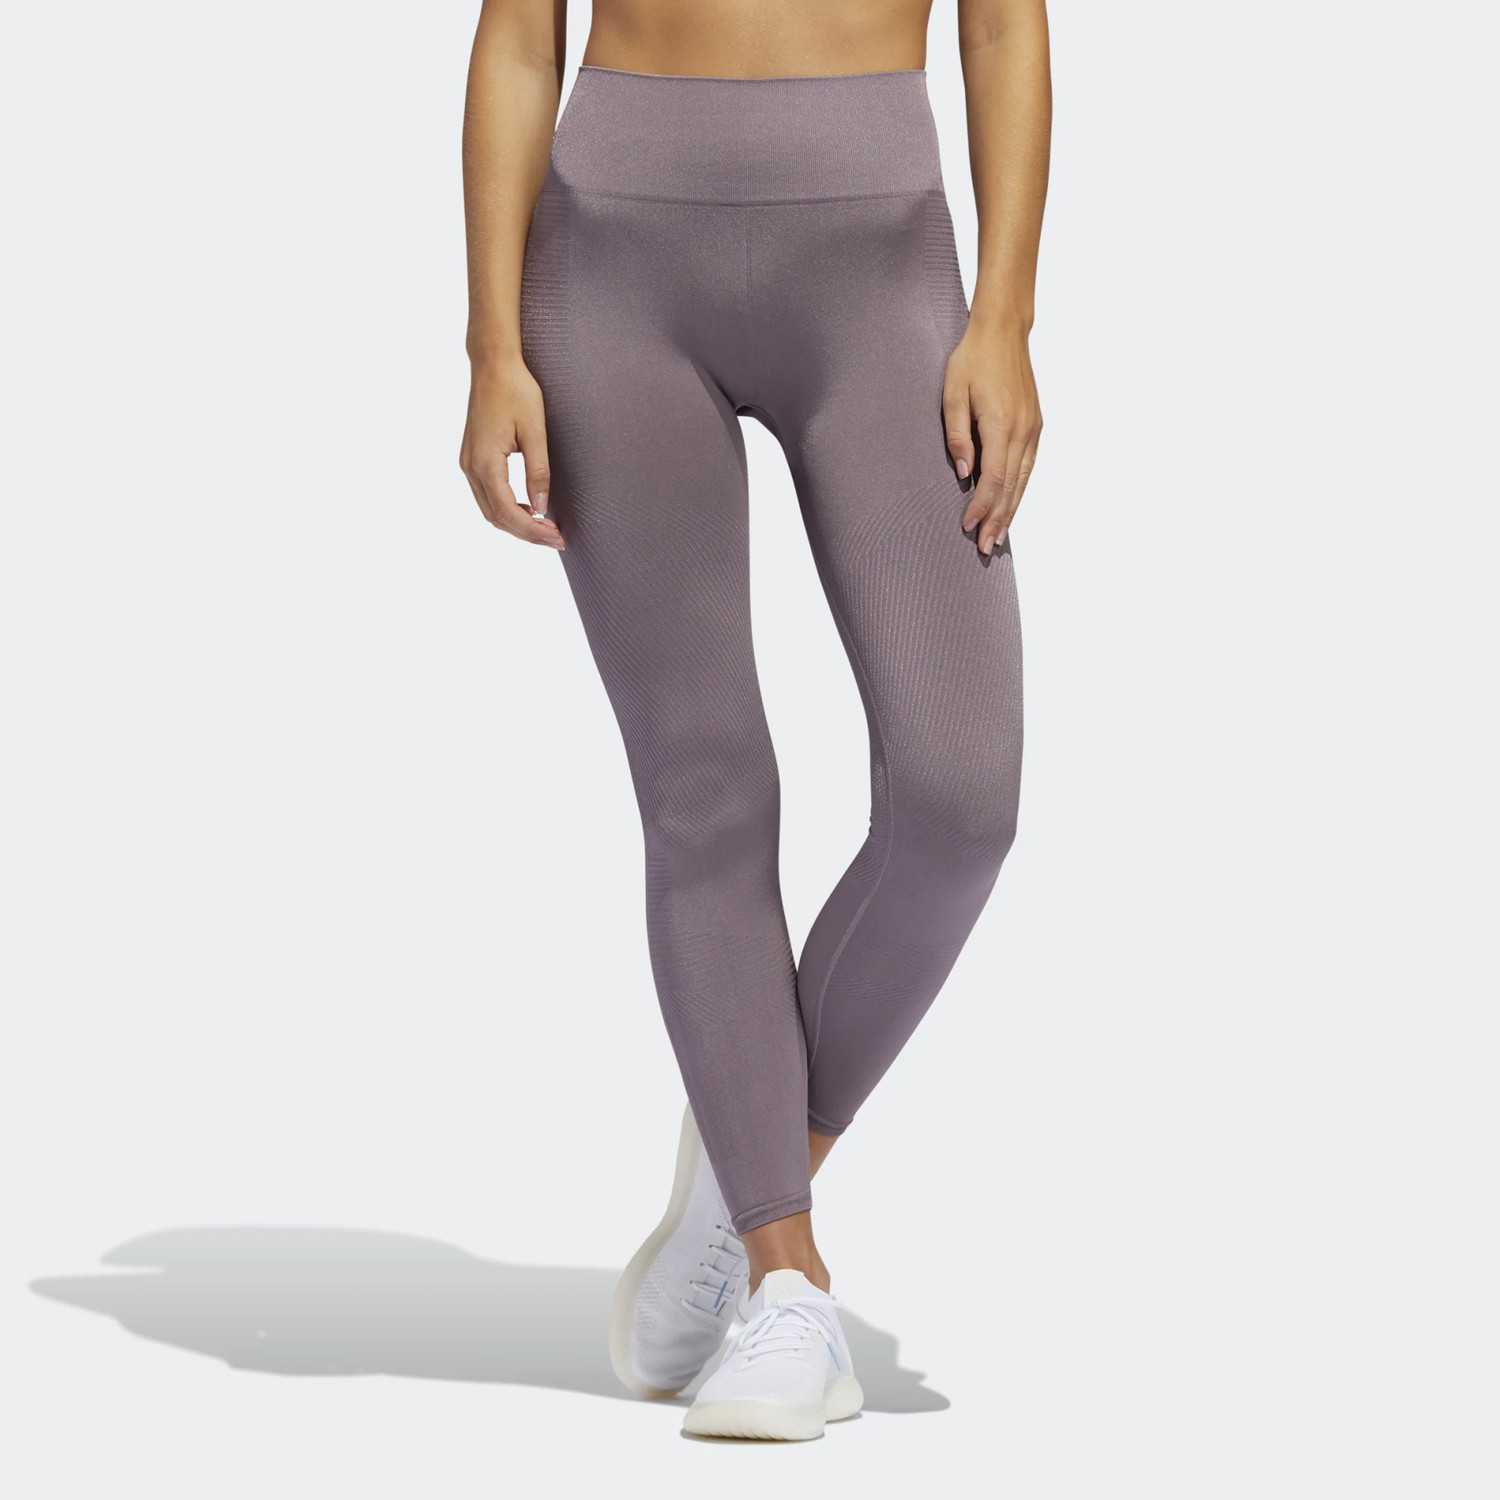 adidas Performance Believe This Primeknit Flw Women's 7/8 Tights (9000045102_43429)